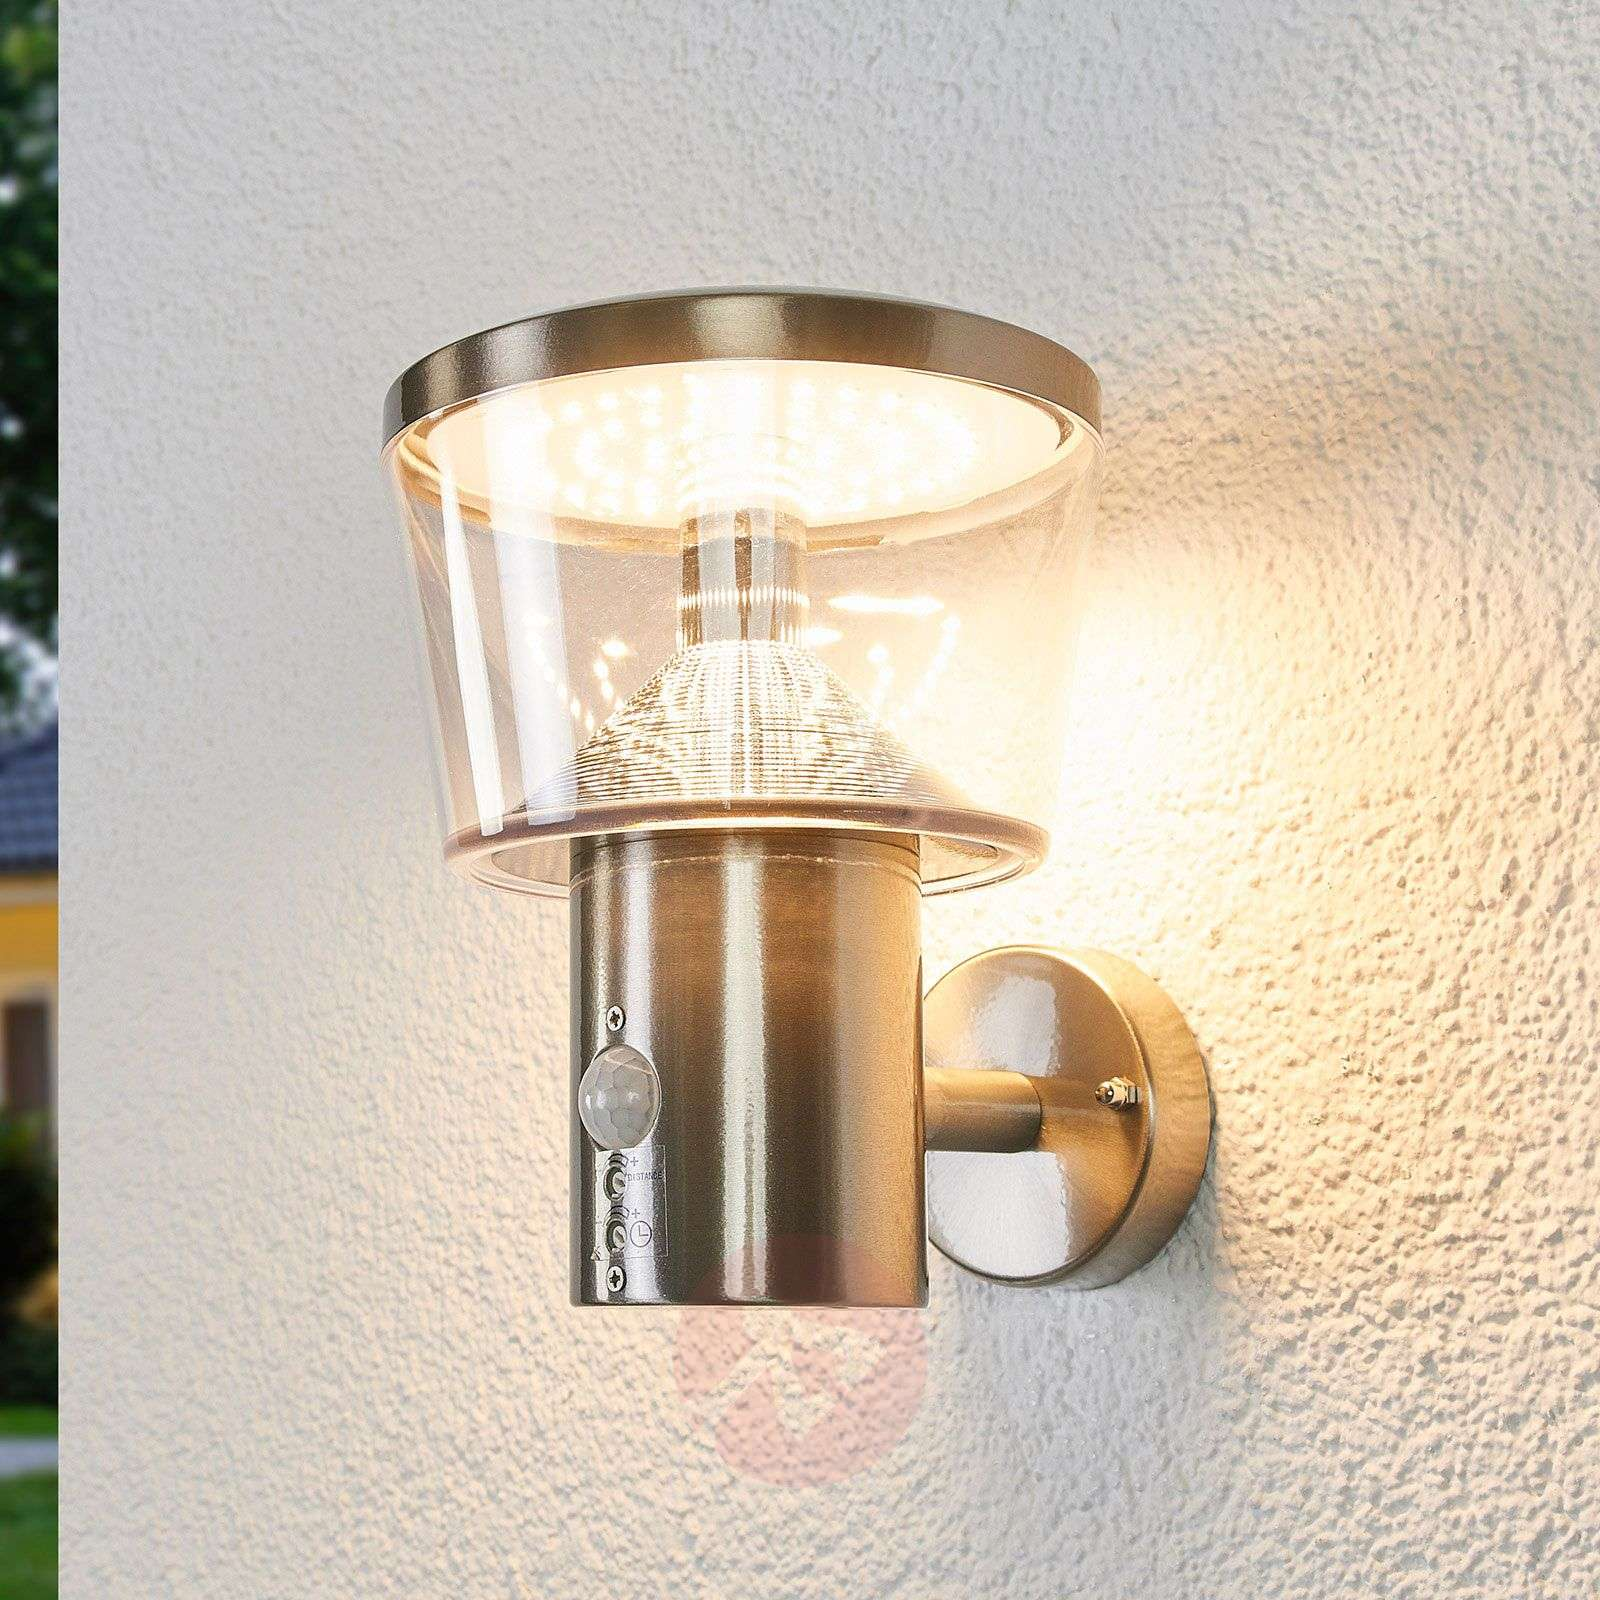 Antje sensor outdoor wall light with LEDs-9988174-01